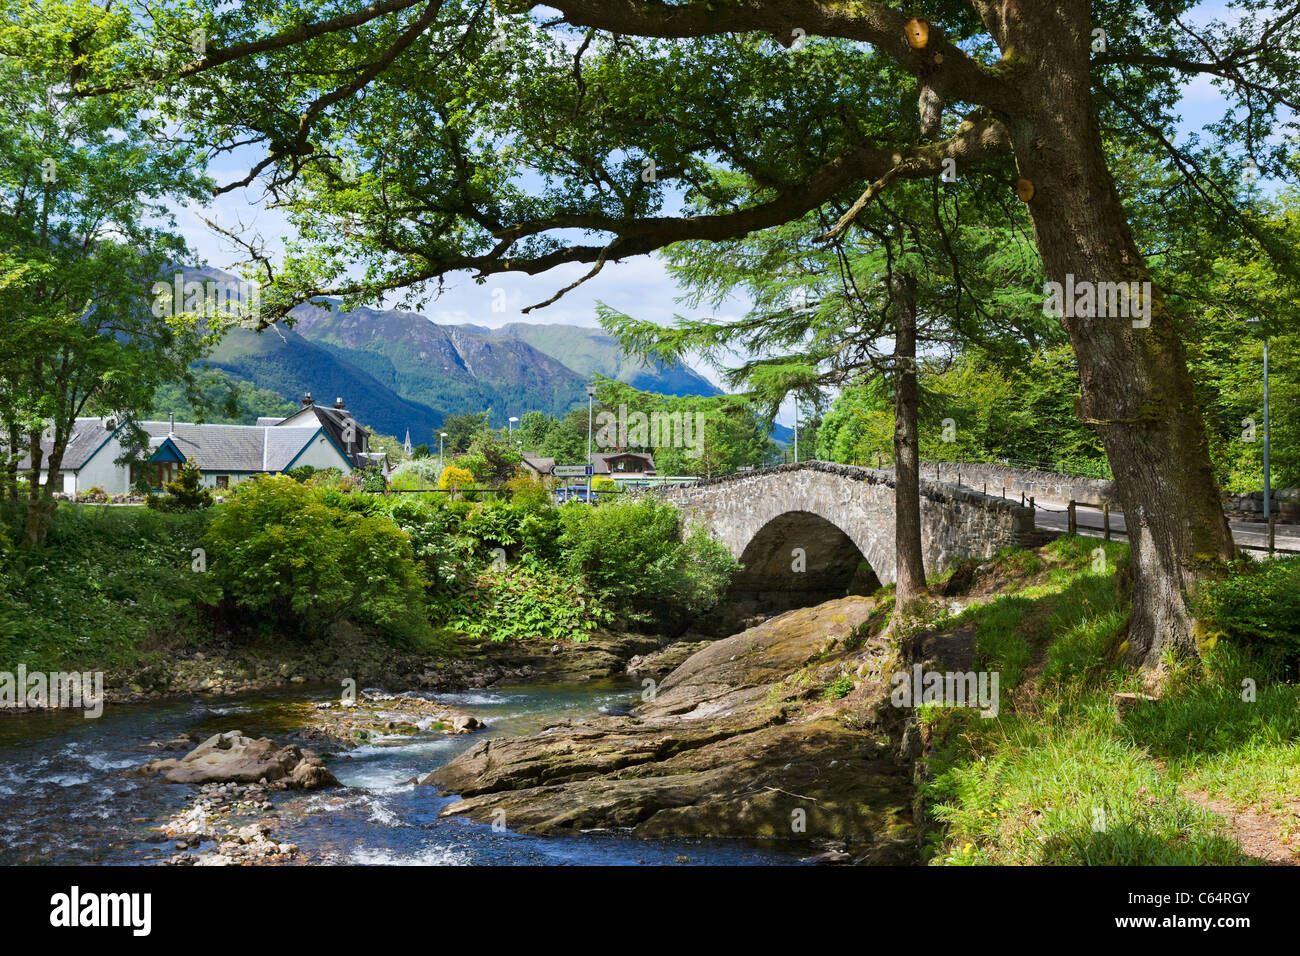 Bridge over the River Coe in the village of Glencoe, Glen Coe, Scottish Highlands, Scotland, UK. Scottish landscape Stock Photo